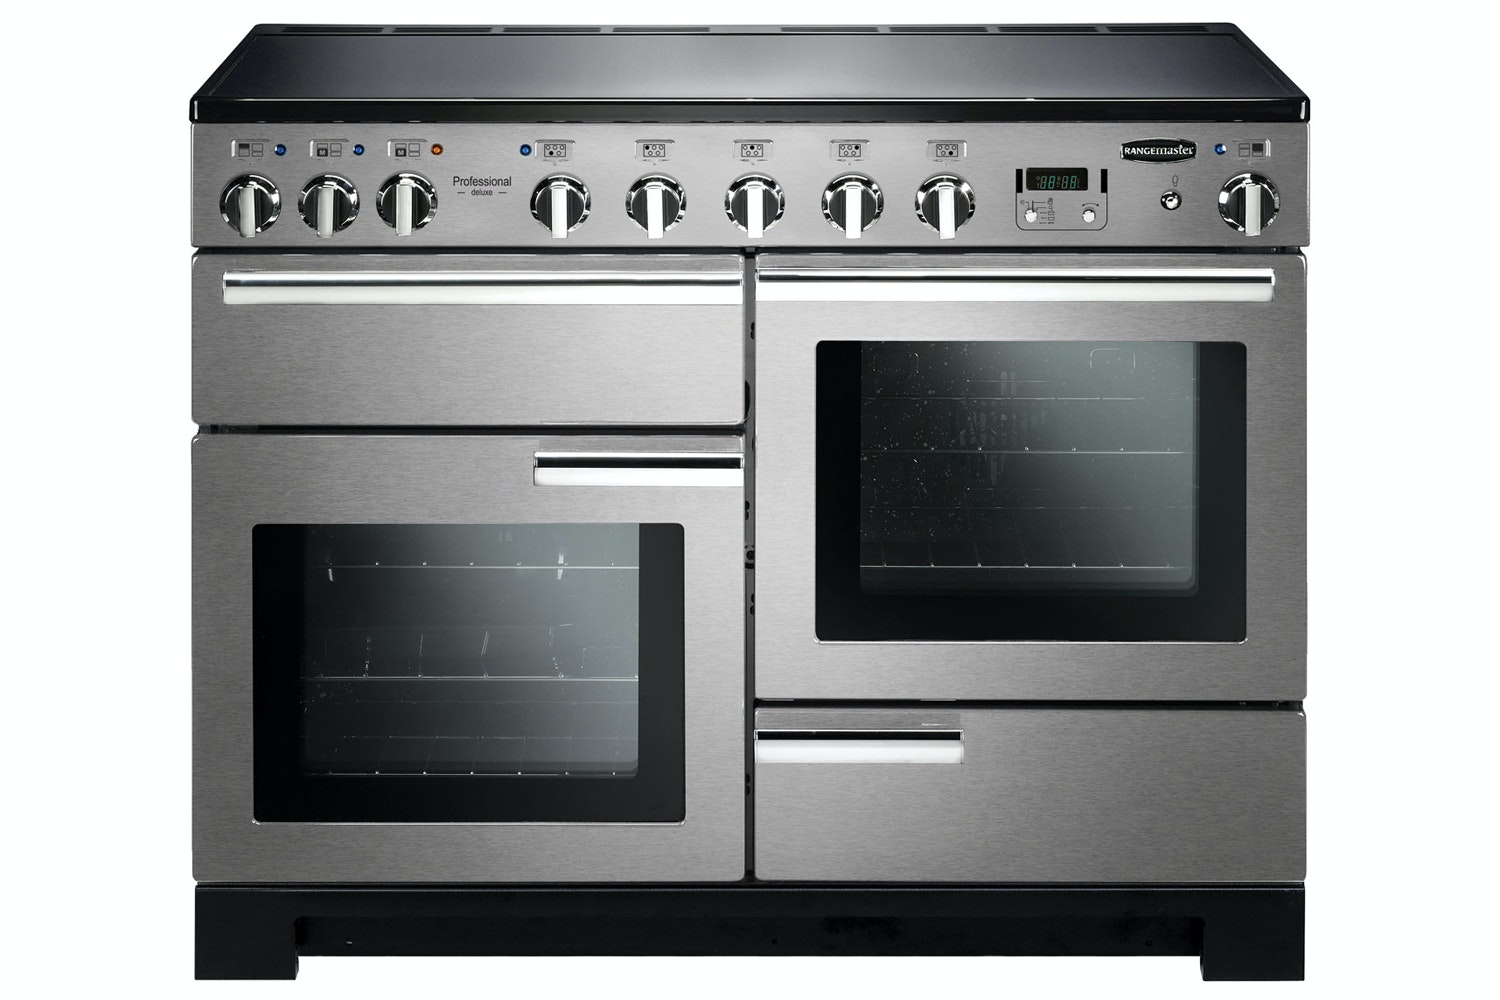 Rangemaster Professional Deluxe 110cm Electric Range Cooker | PDL110EISS/C | Stainless Steel